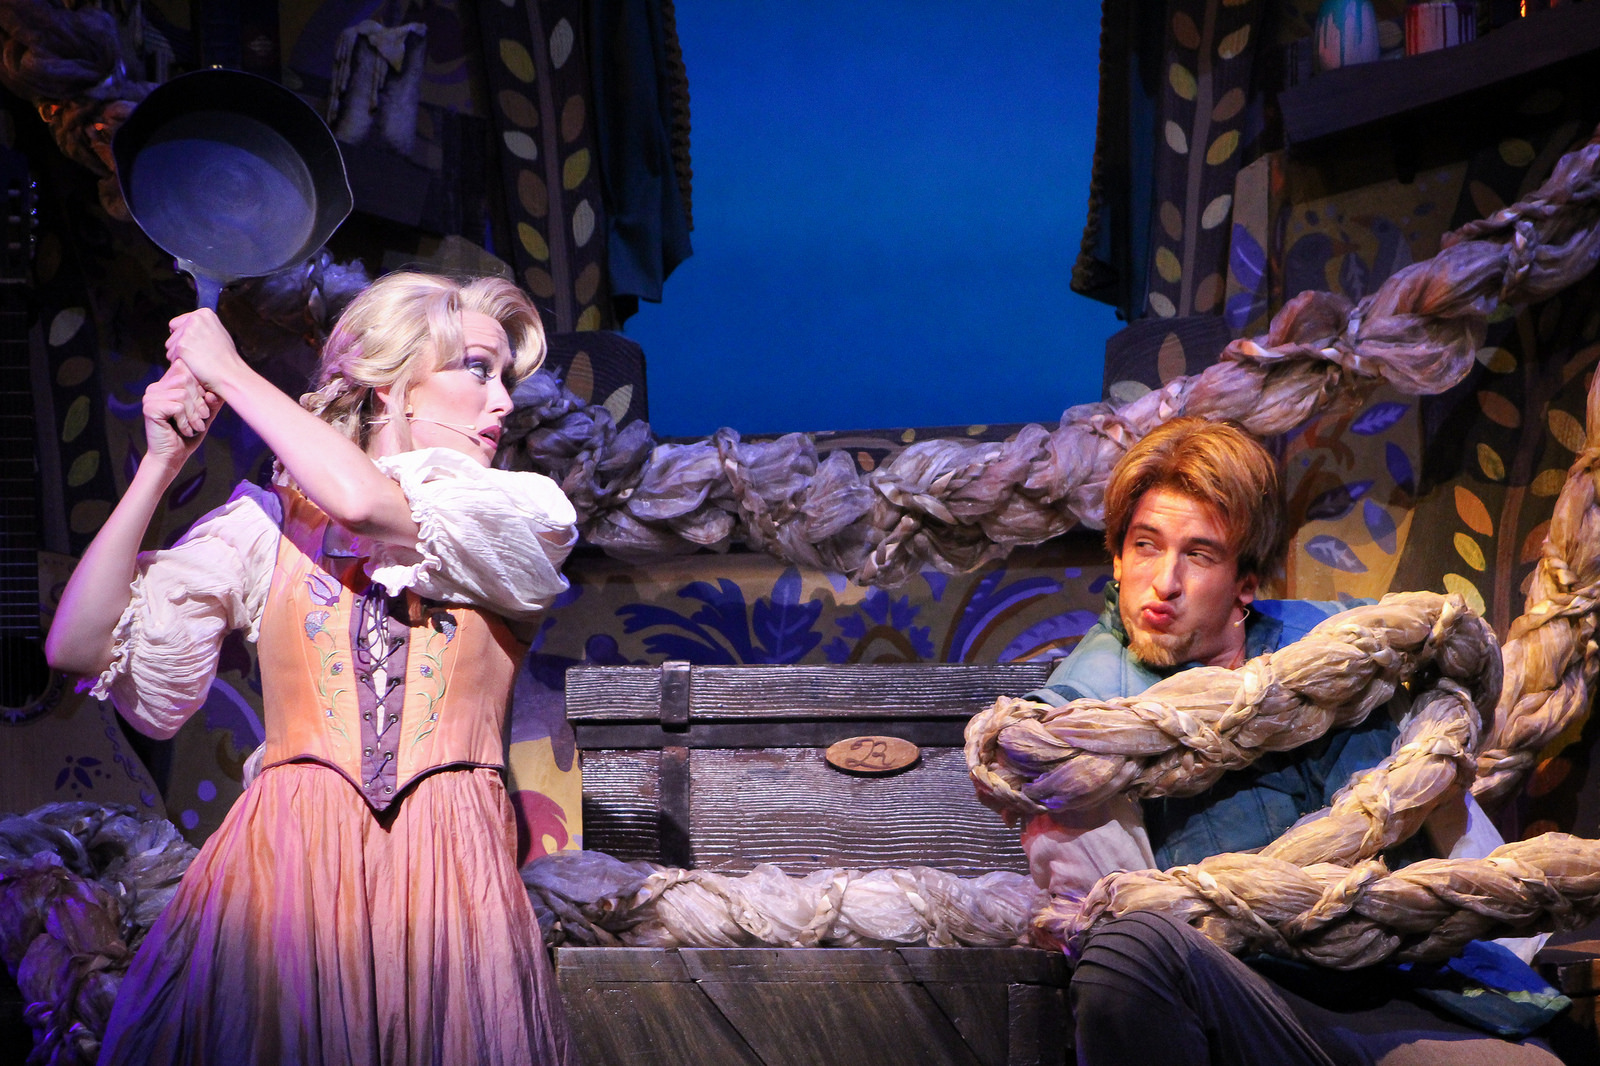 NEWS 6 - NEWS 6 reporter, Amanda Castro goes behind the scenes of Tangled the Musical.